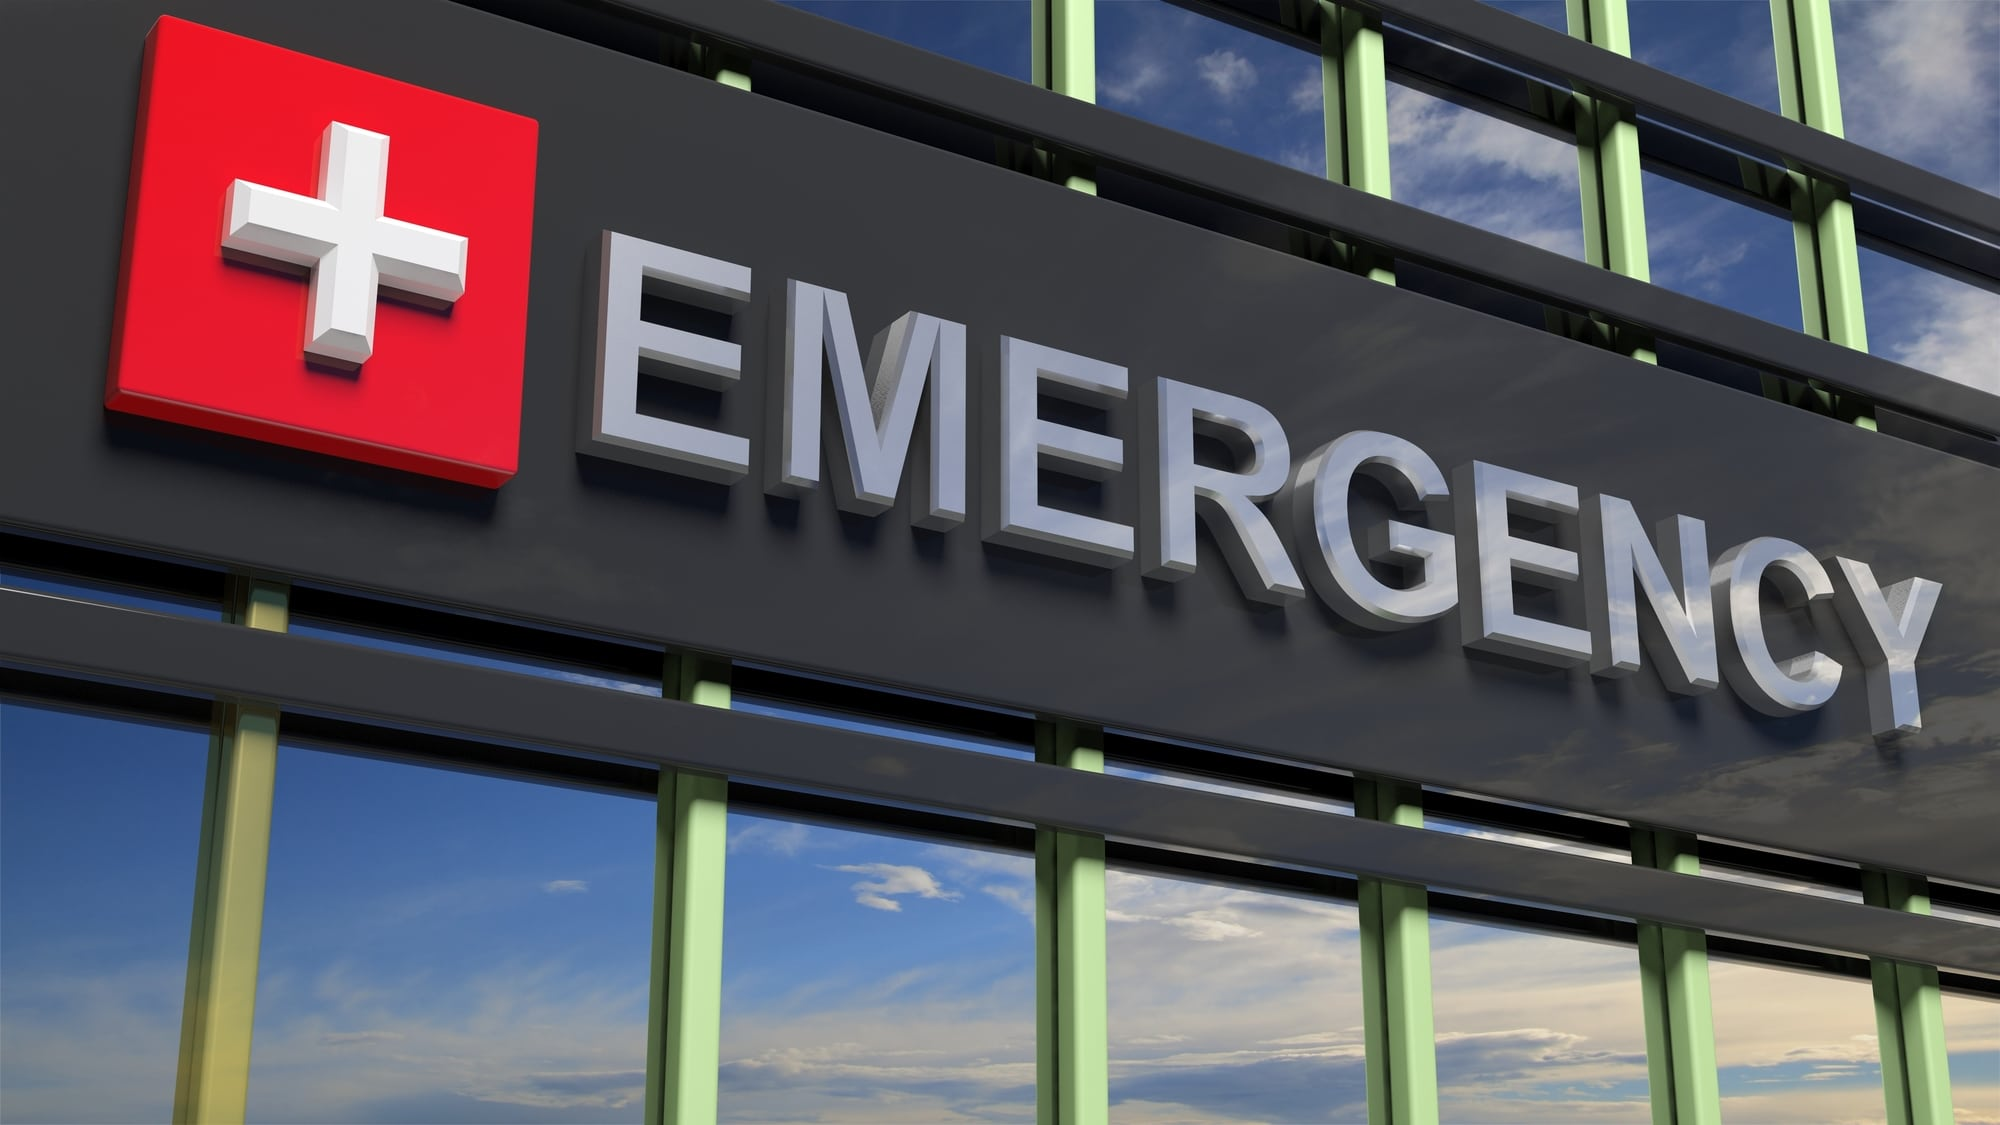 Emergency department building sign closeup, with sky reflecting in the glass.